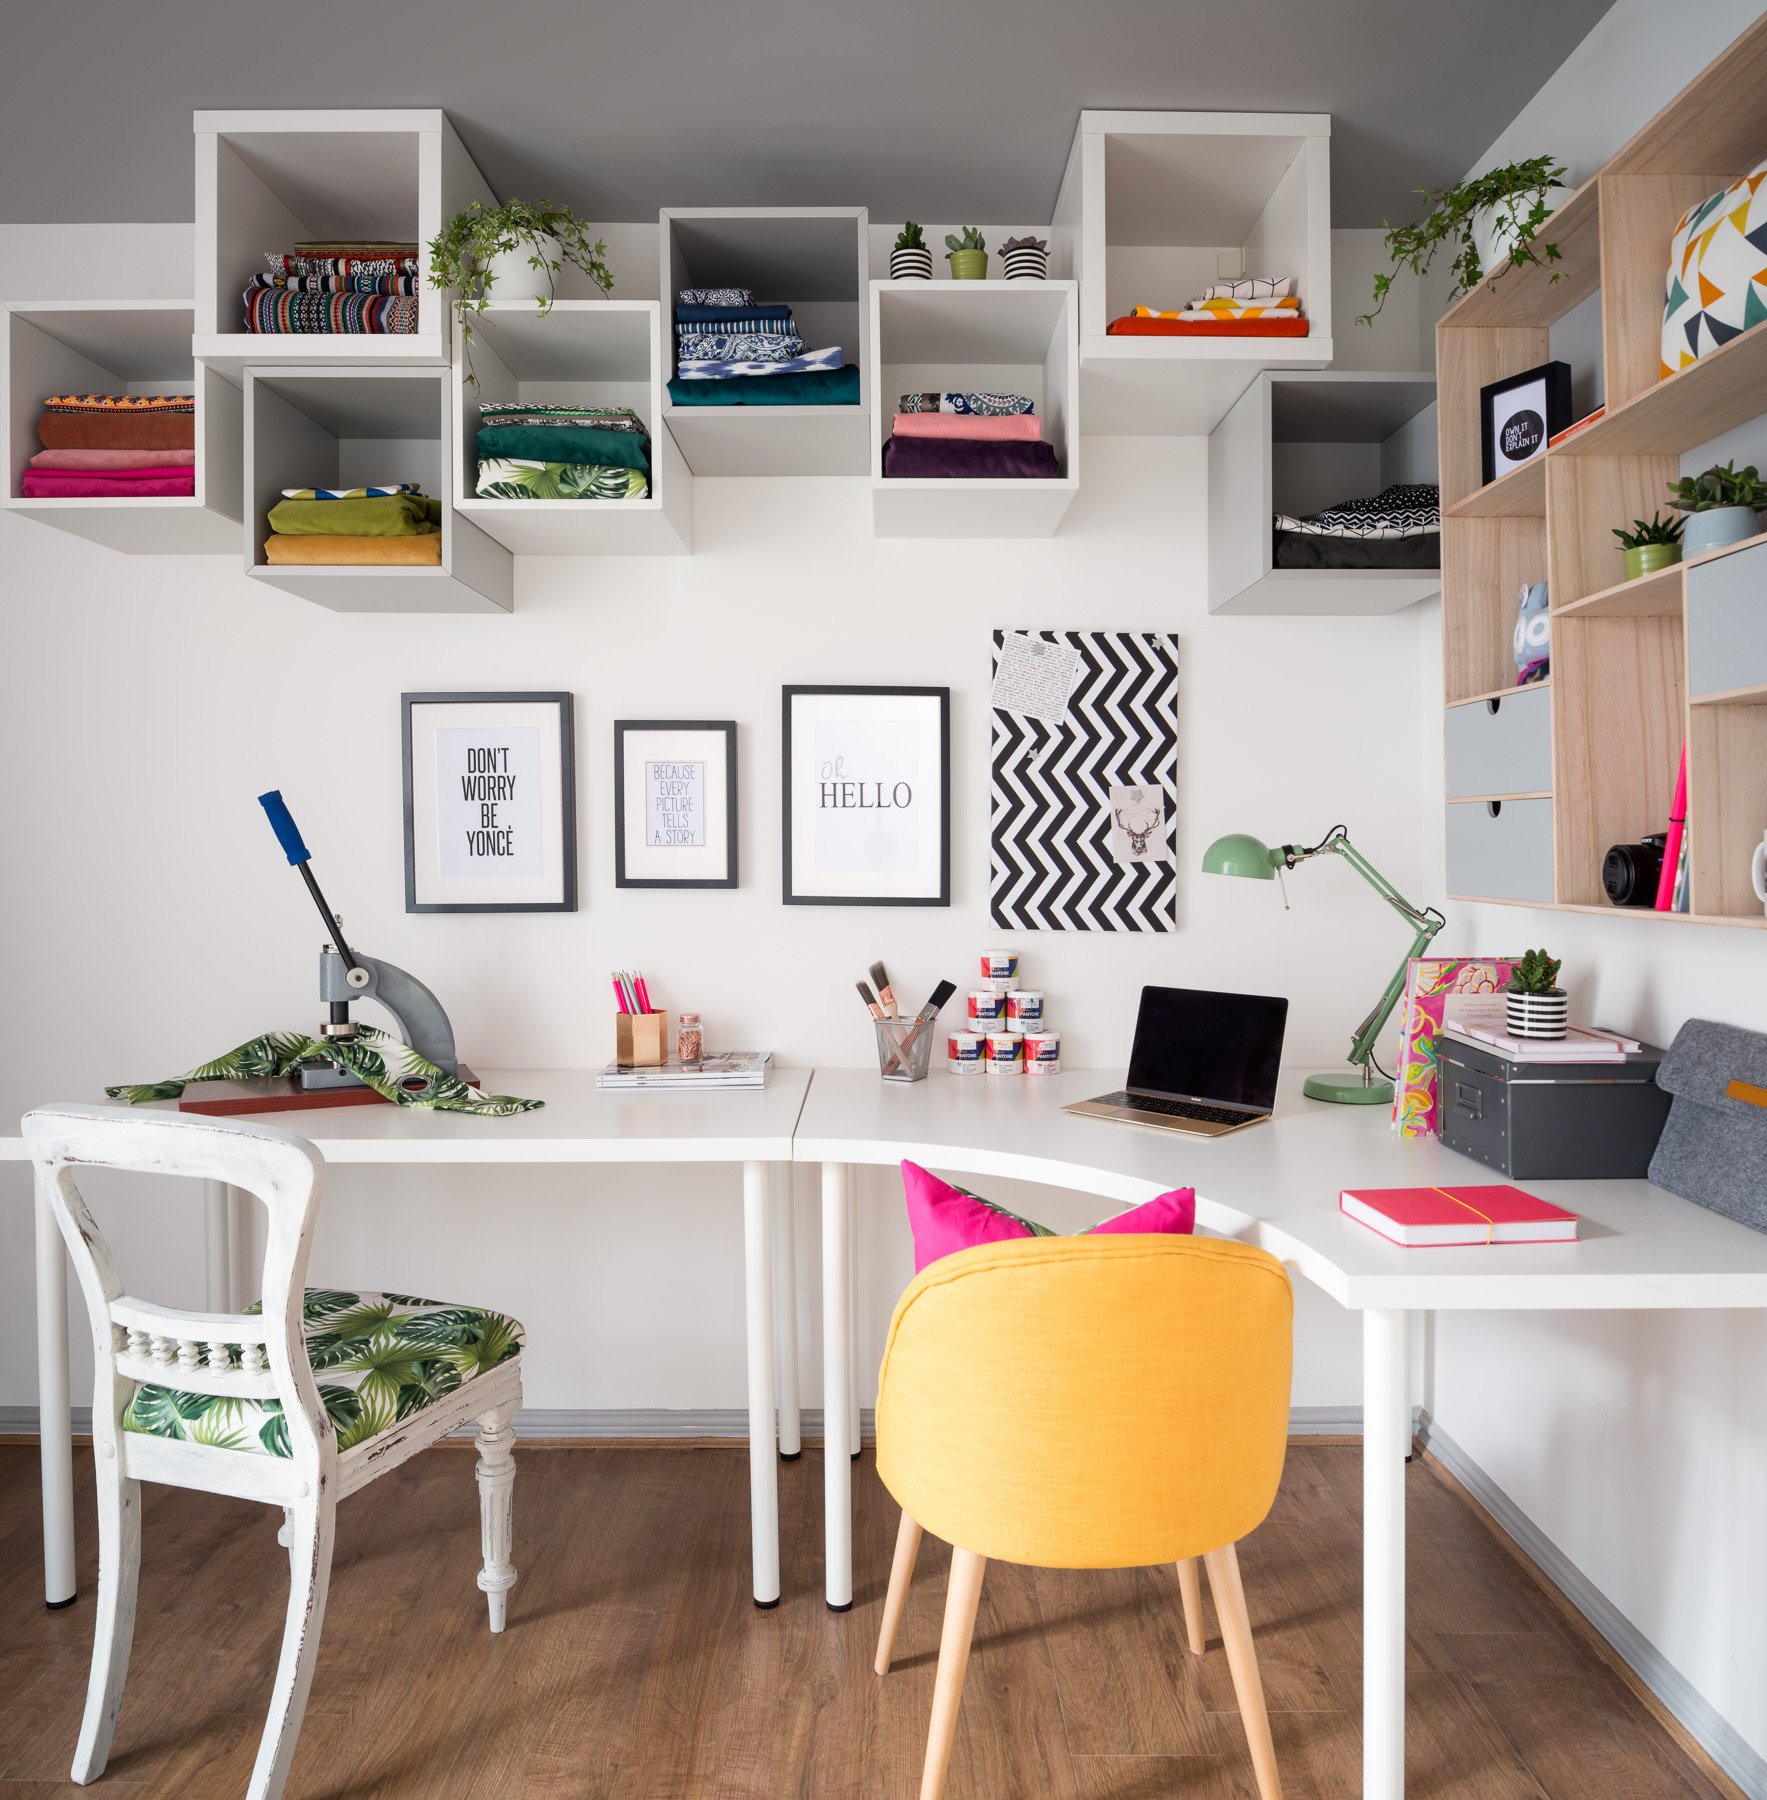 Home Office Craft Room Ideas: Light And Bright Home Office/Craft Room